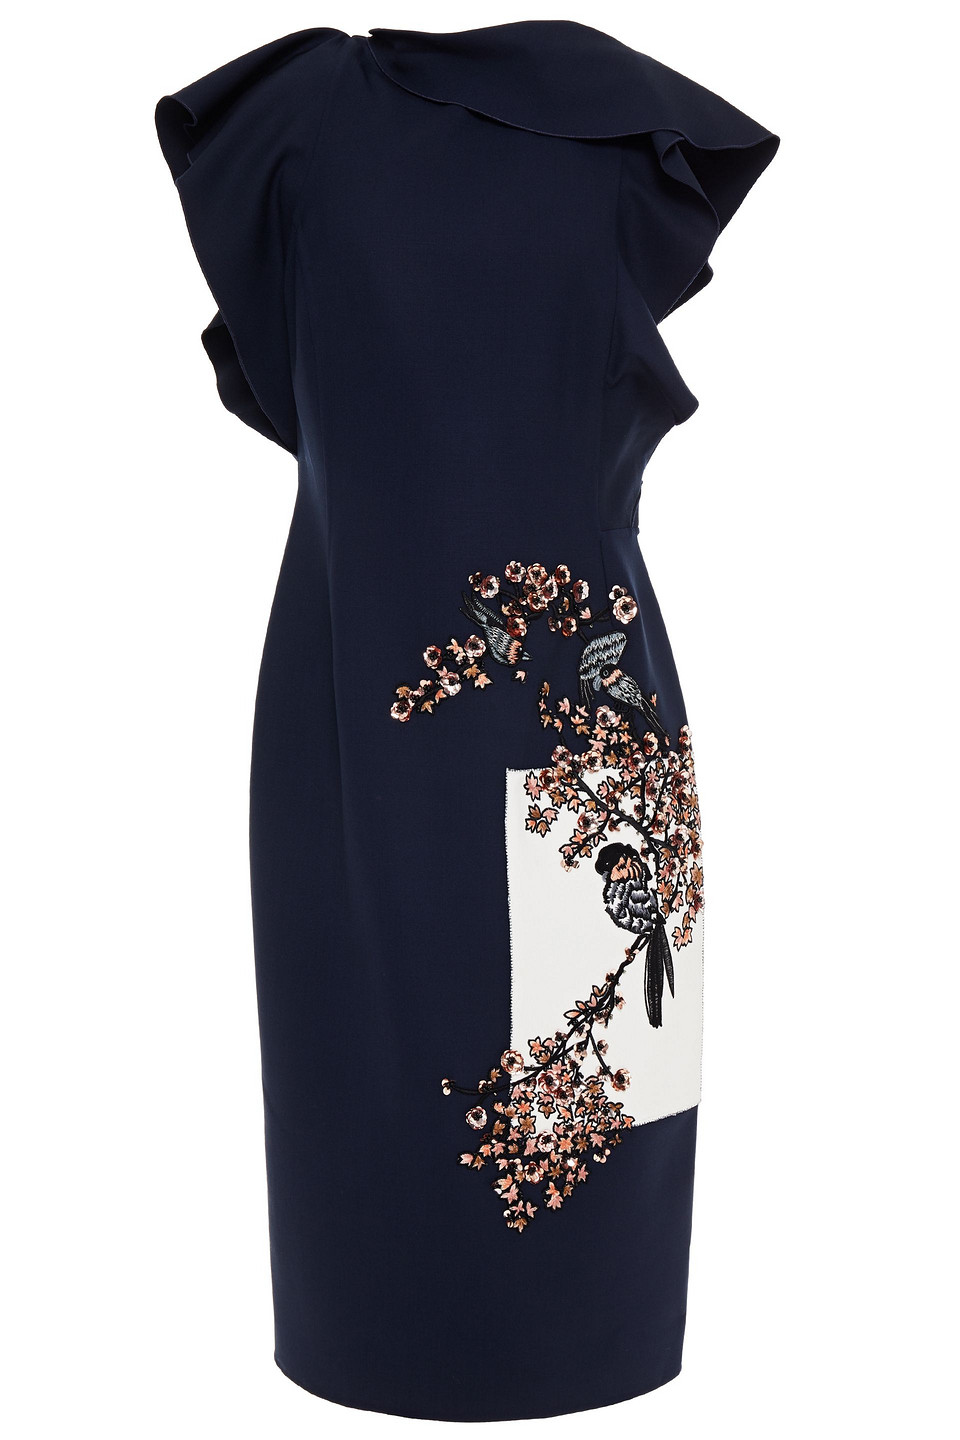 Oscar De La Renta | Oscar De La Renta Woman Embellished Embroidered Wool-blend Crepe Dress Midnight Blue | Clouty